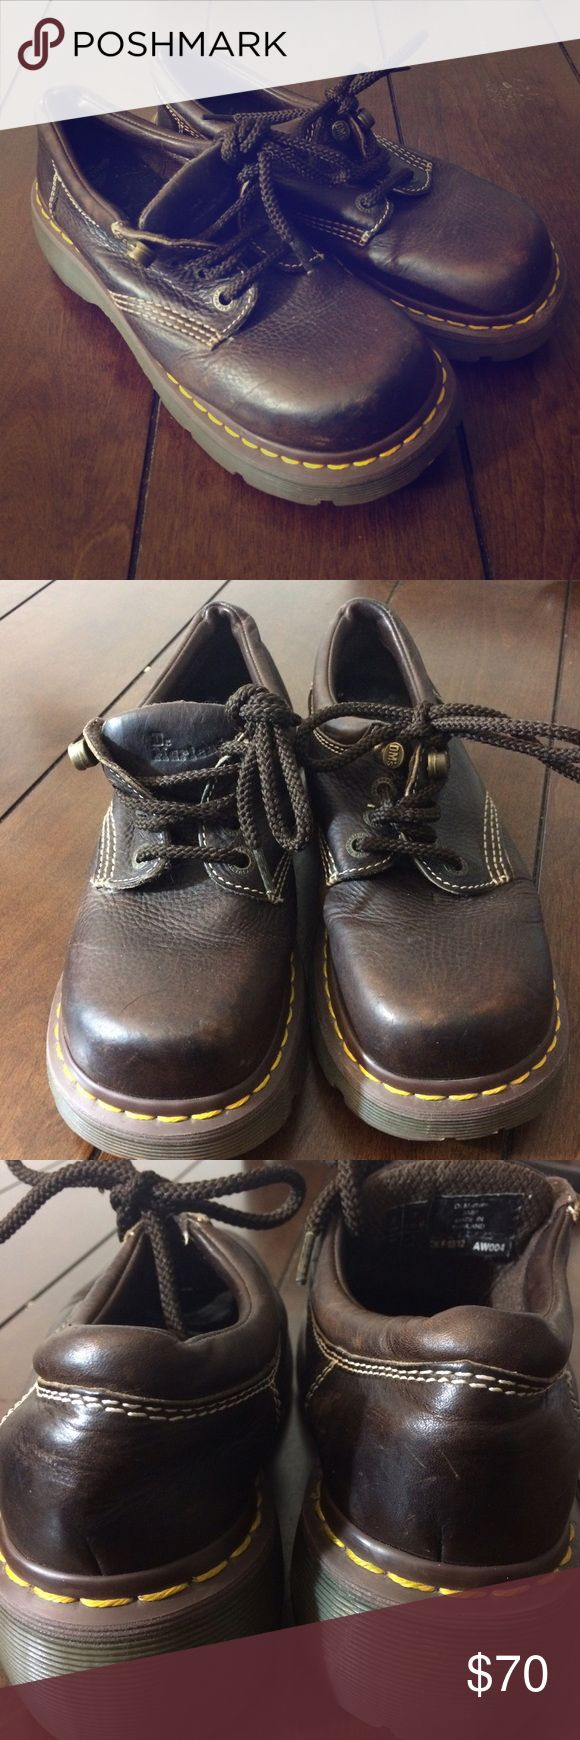 FLASH sale! Doc Marten shoes Woman's size 8 brown dr. Marten shoes. Some light scuffing/wear. No structural damage. Lowest clearance. Offers will not be accepted. Bundle discount still applies. Dr. Martens Shoes Ankle Boots & Booties